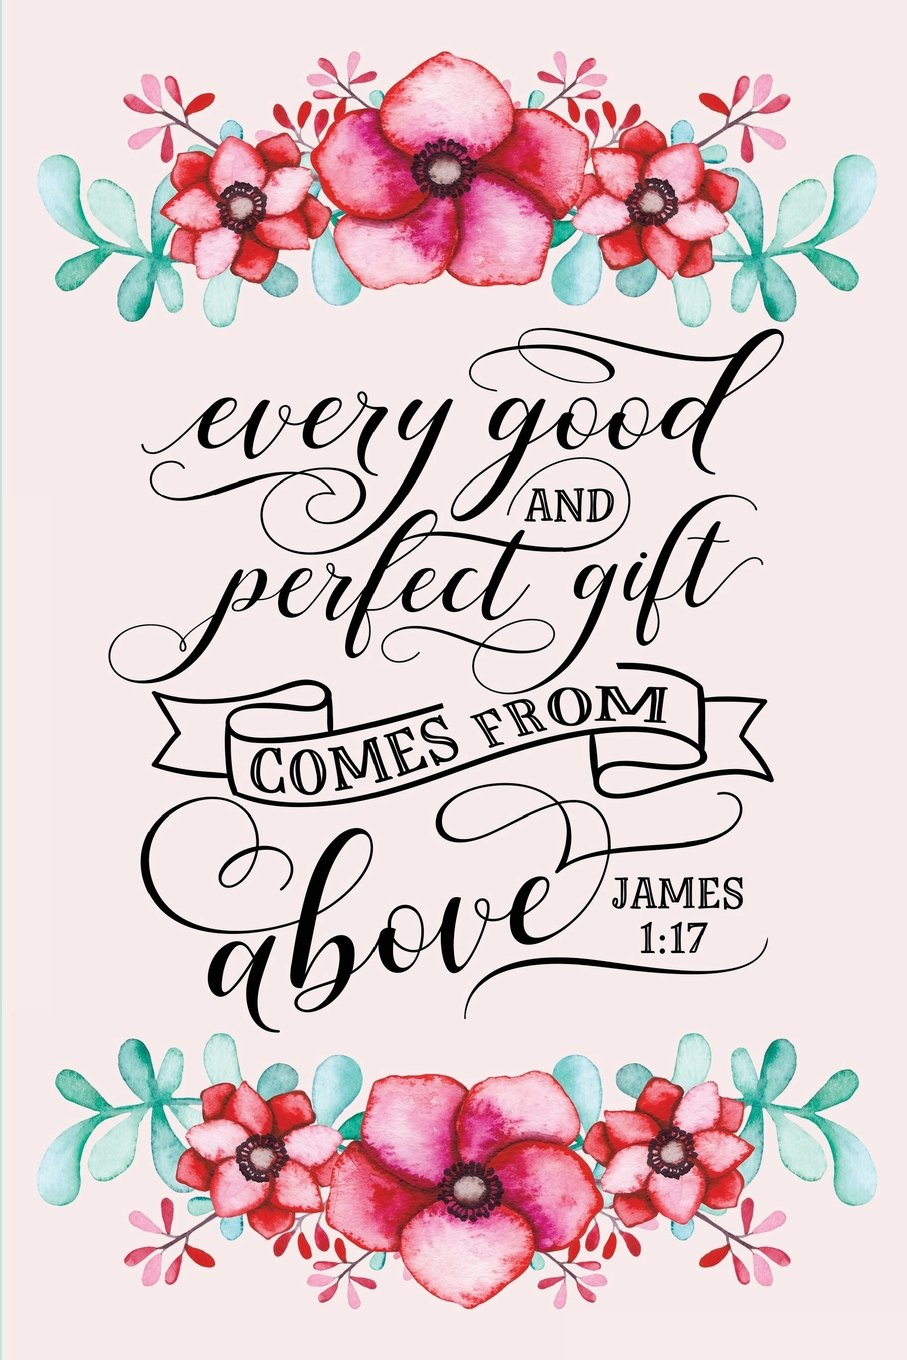 Read Online Every Good and Perfect Gift Comes From Above: James 1:17 Bible Quote Blank Lined Journal with Watercolor Flower Border (Composition Book, 120 pages, 6x9 inches) pdf